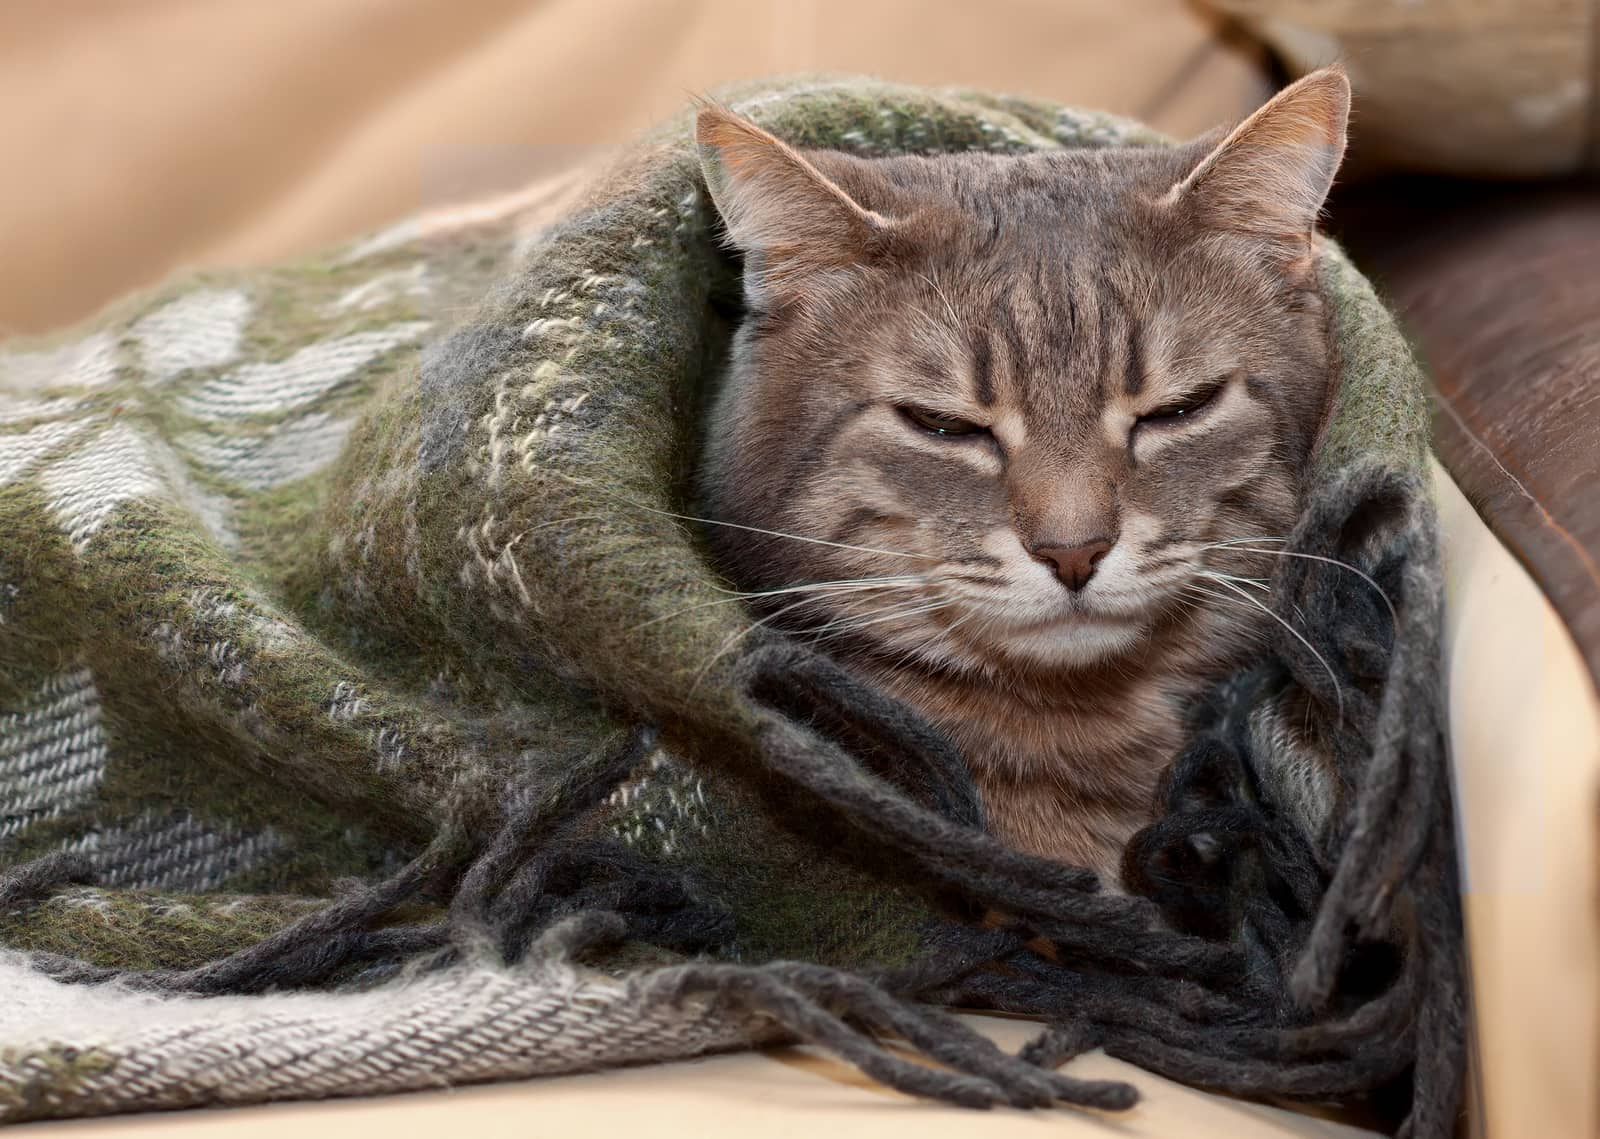 Gray tabby cat resting in a blanket